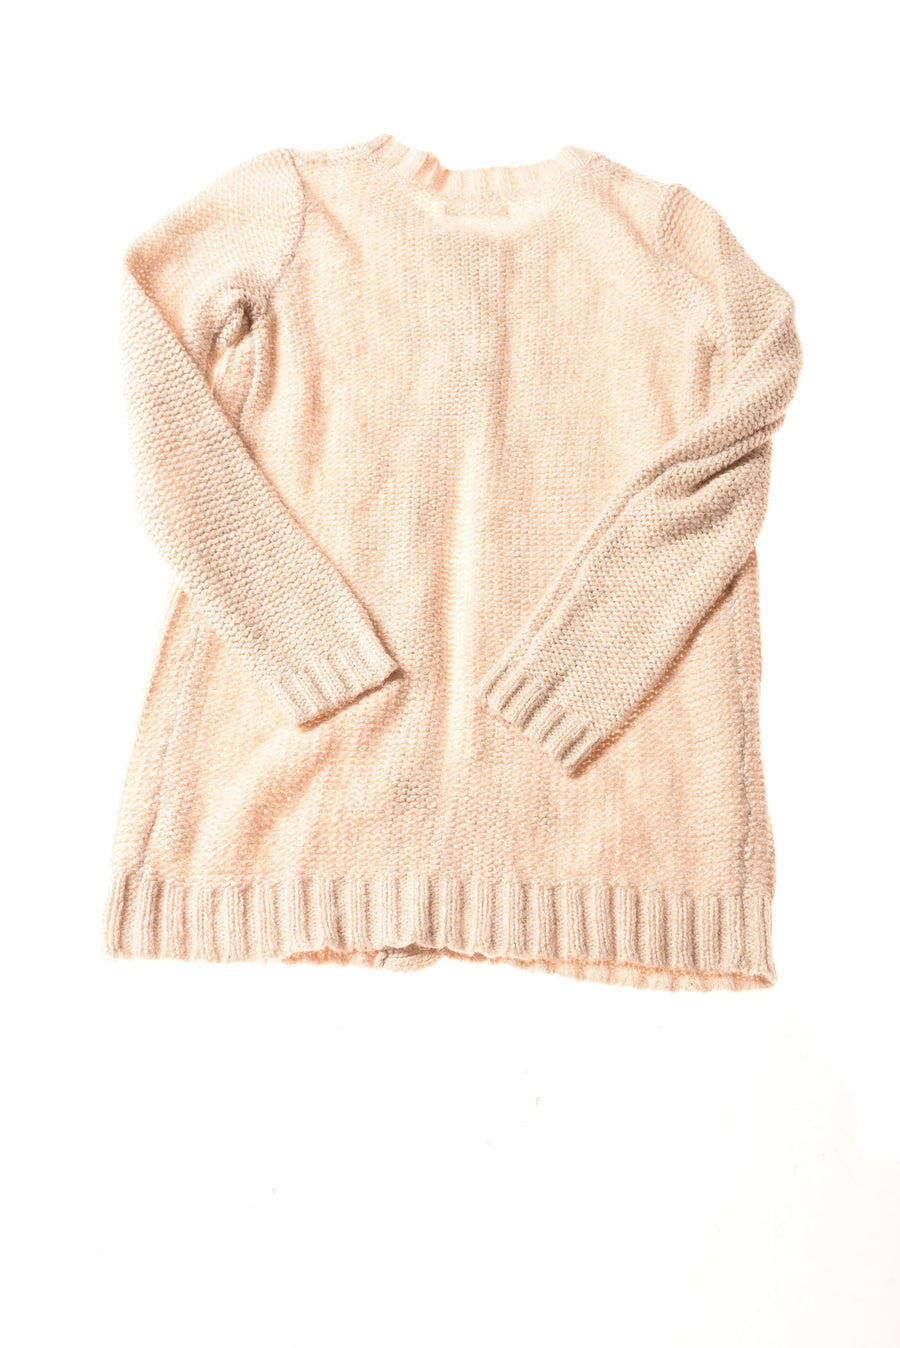 USED Old Navy Women's Sweater Medium Tan